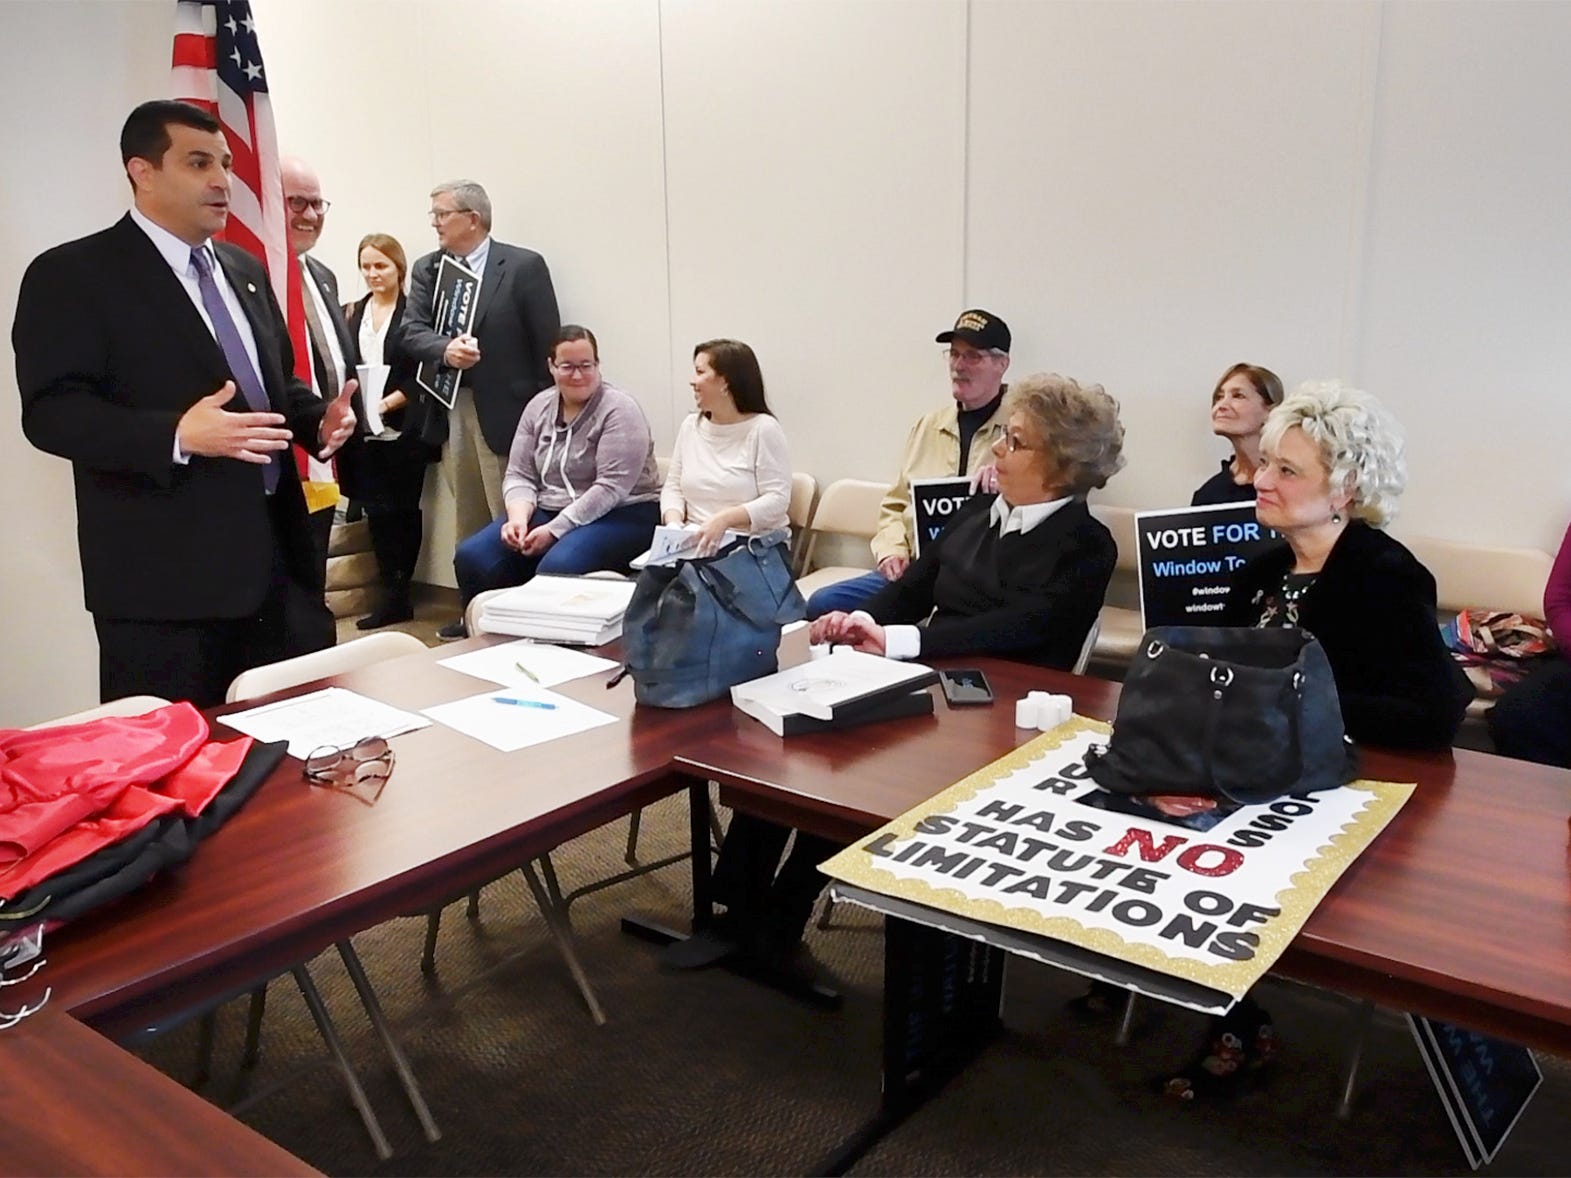 State Rep. Mark Rozzi, left, addresses advocates for statute of limitations reform to the state's childhood sexual abuse laws at the state capitol in Harrisburg Monday October, 15, 2018.